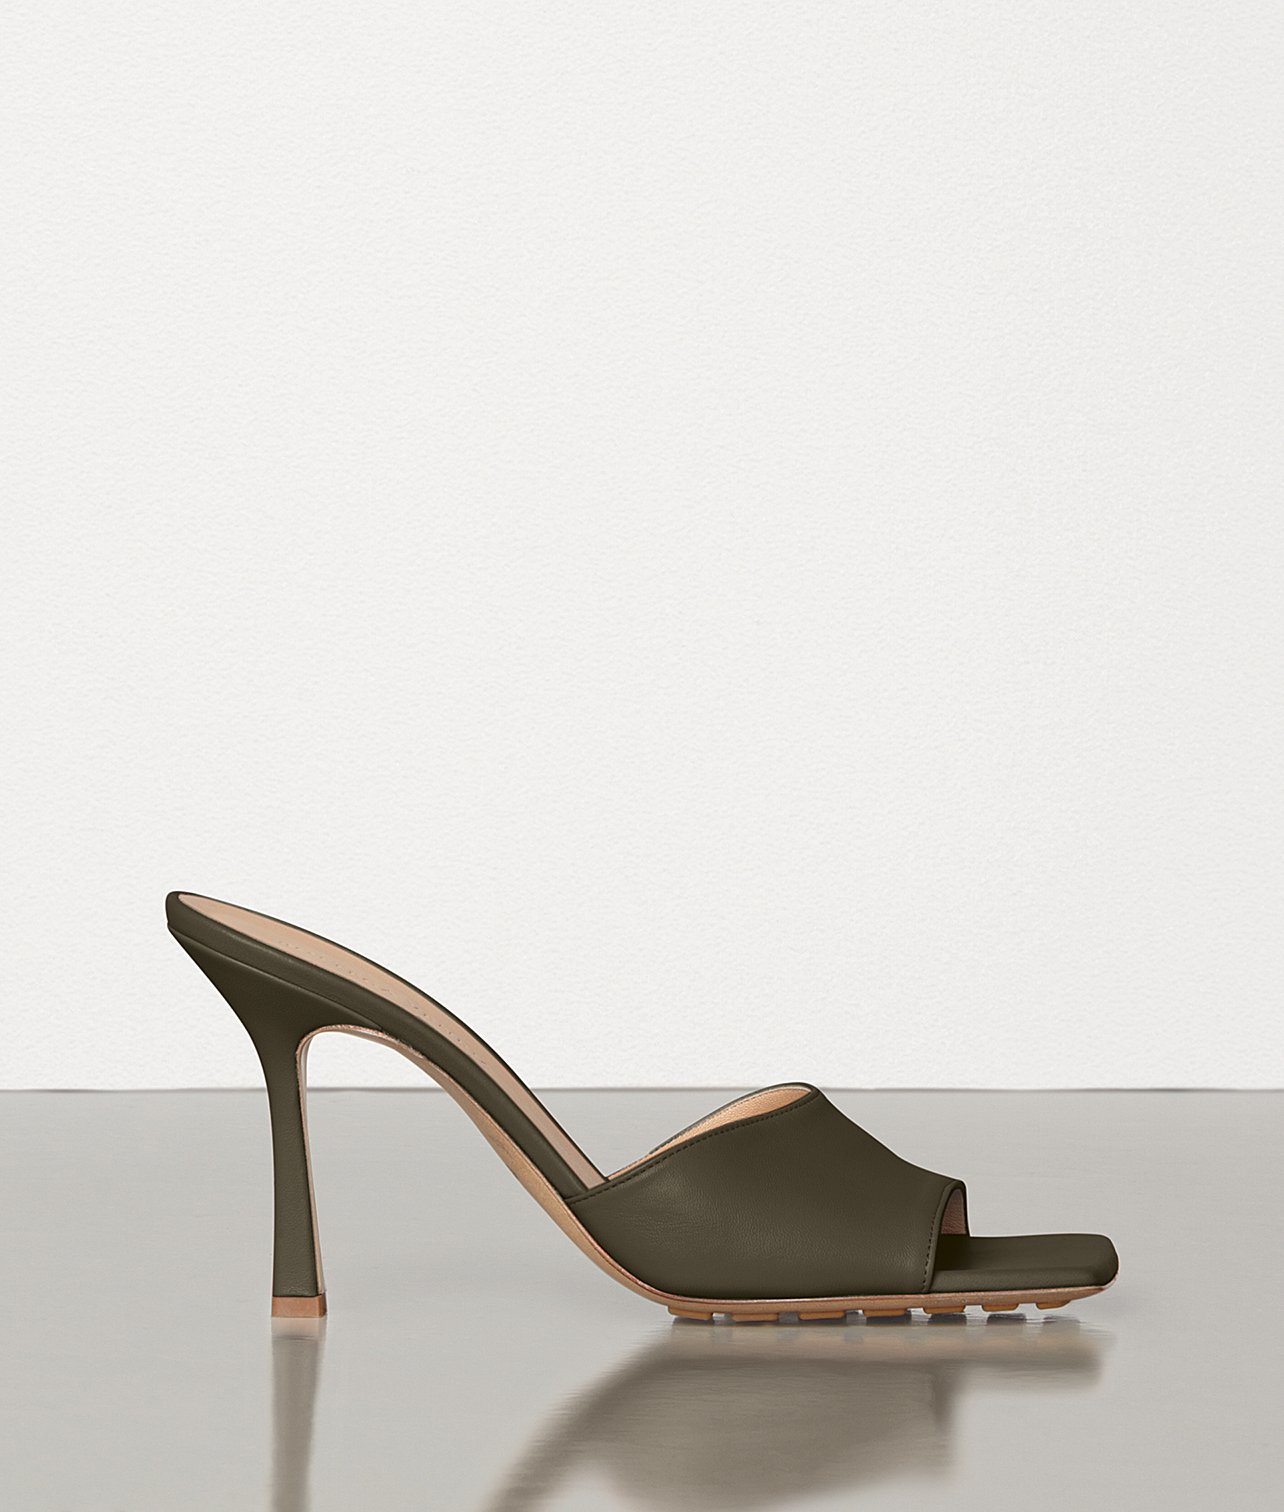 Exact Product: Stretch Mules, Brand: Bottega Veneta, Available on: bottegaveneta.com, Price: EUR520